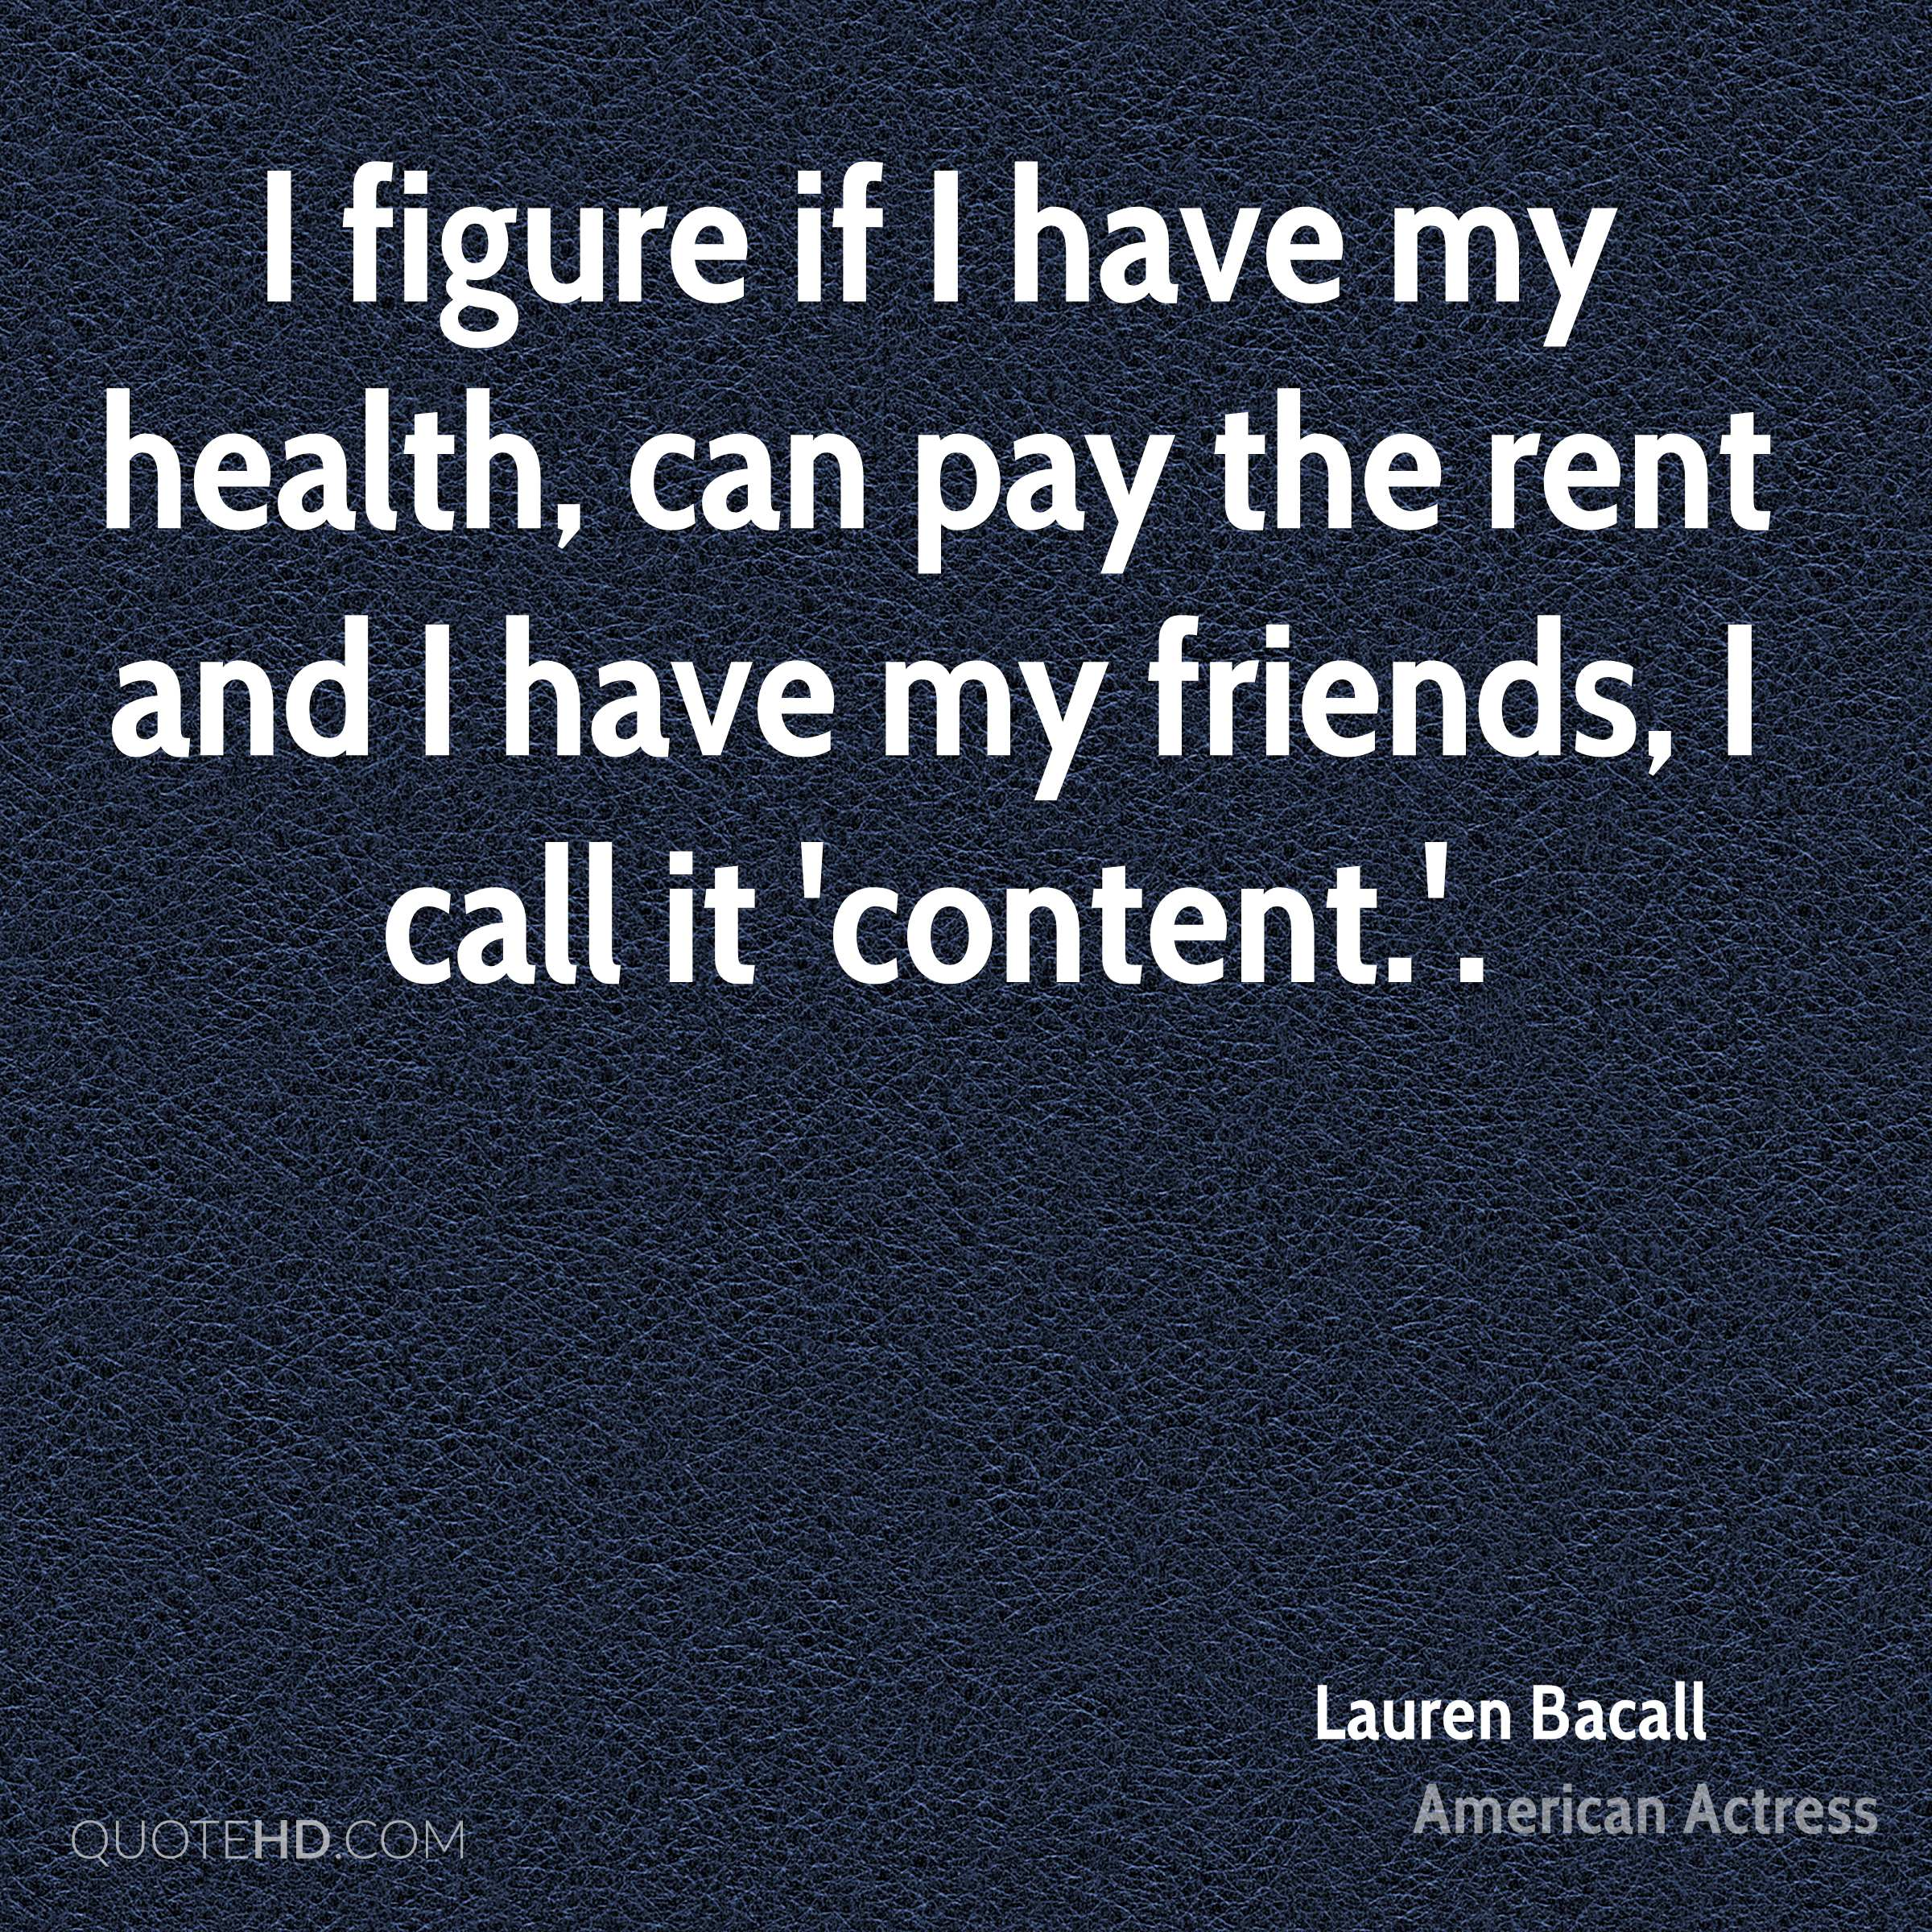 I figure if I have my health, can pay the rent and I have my friends, I call it 'content.'.